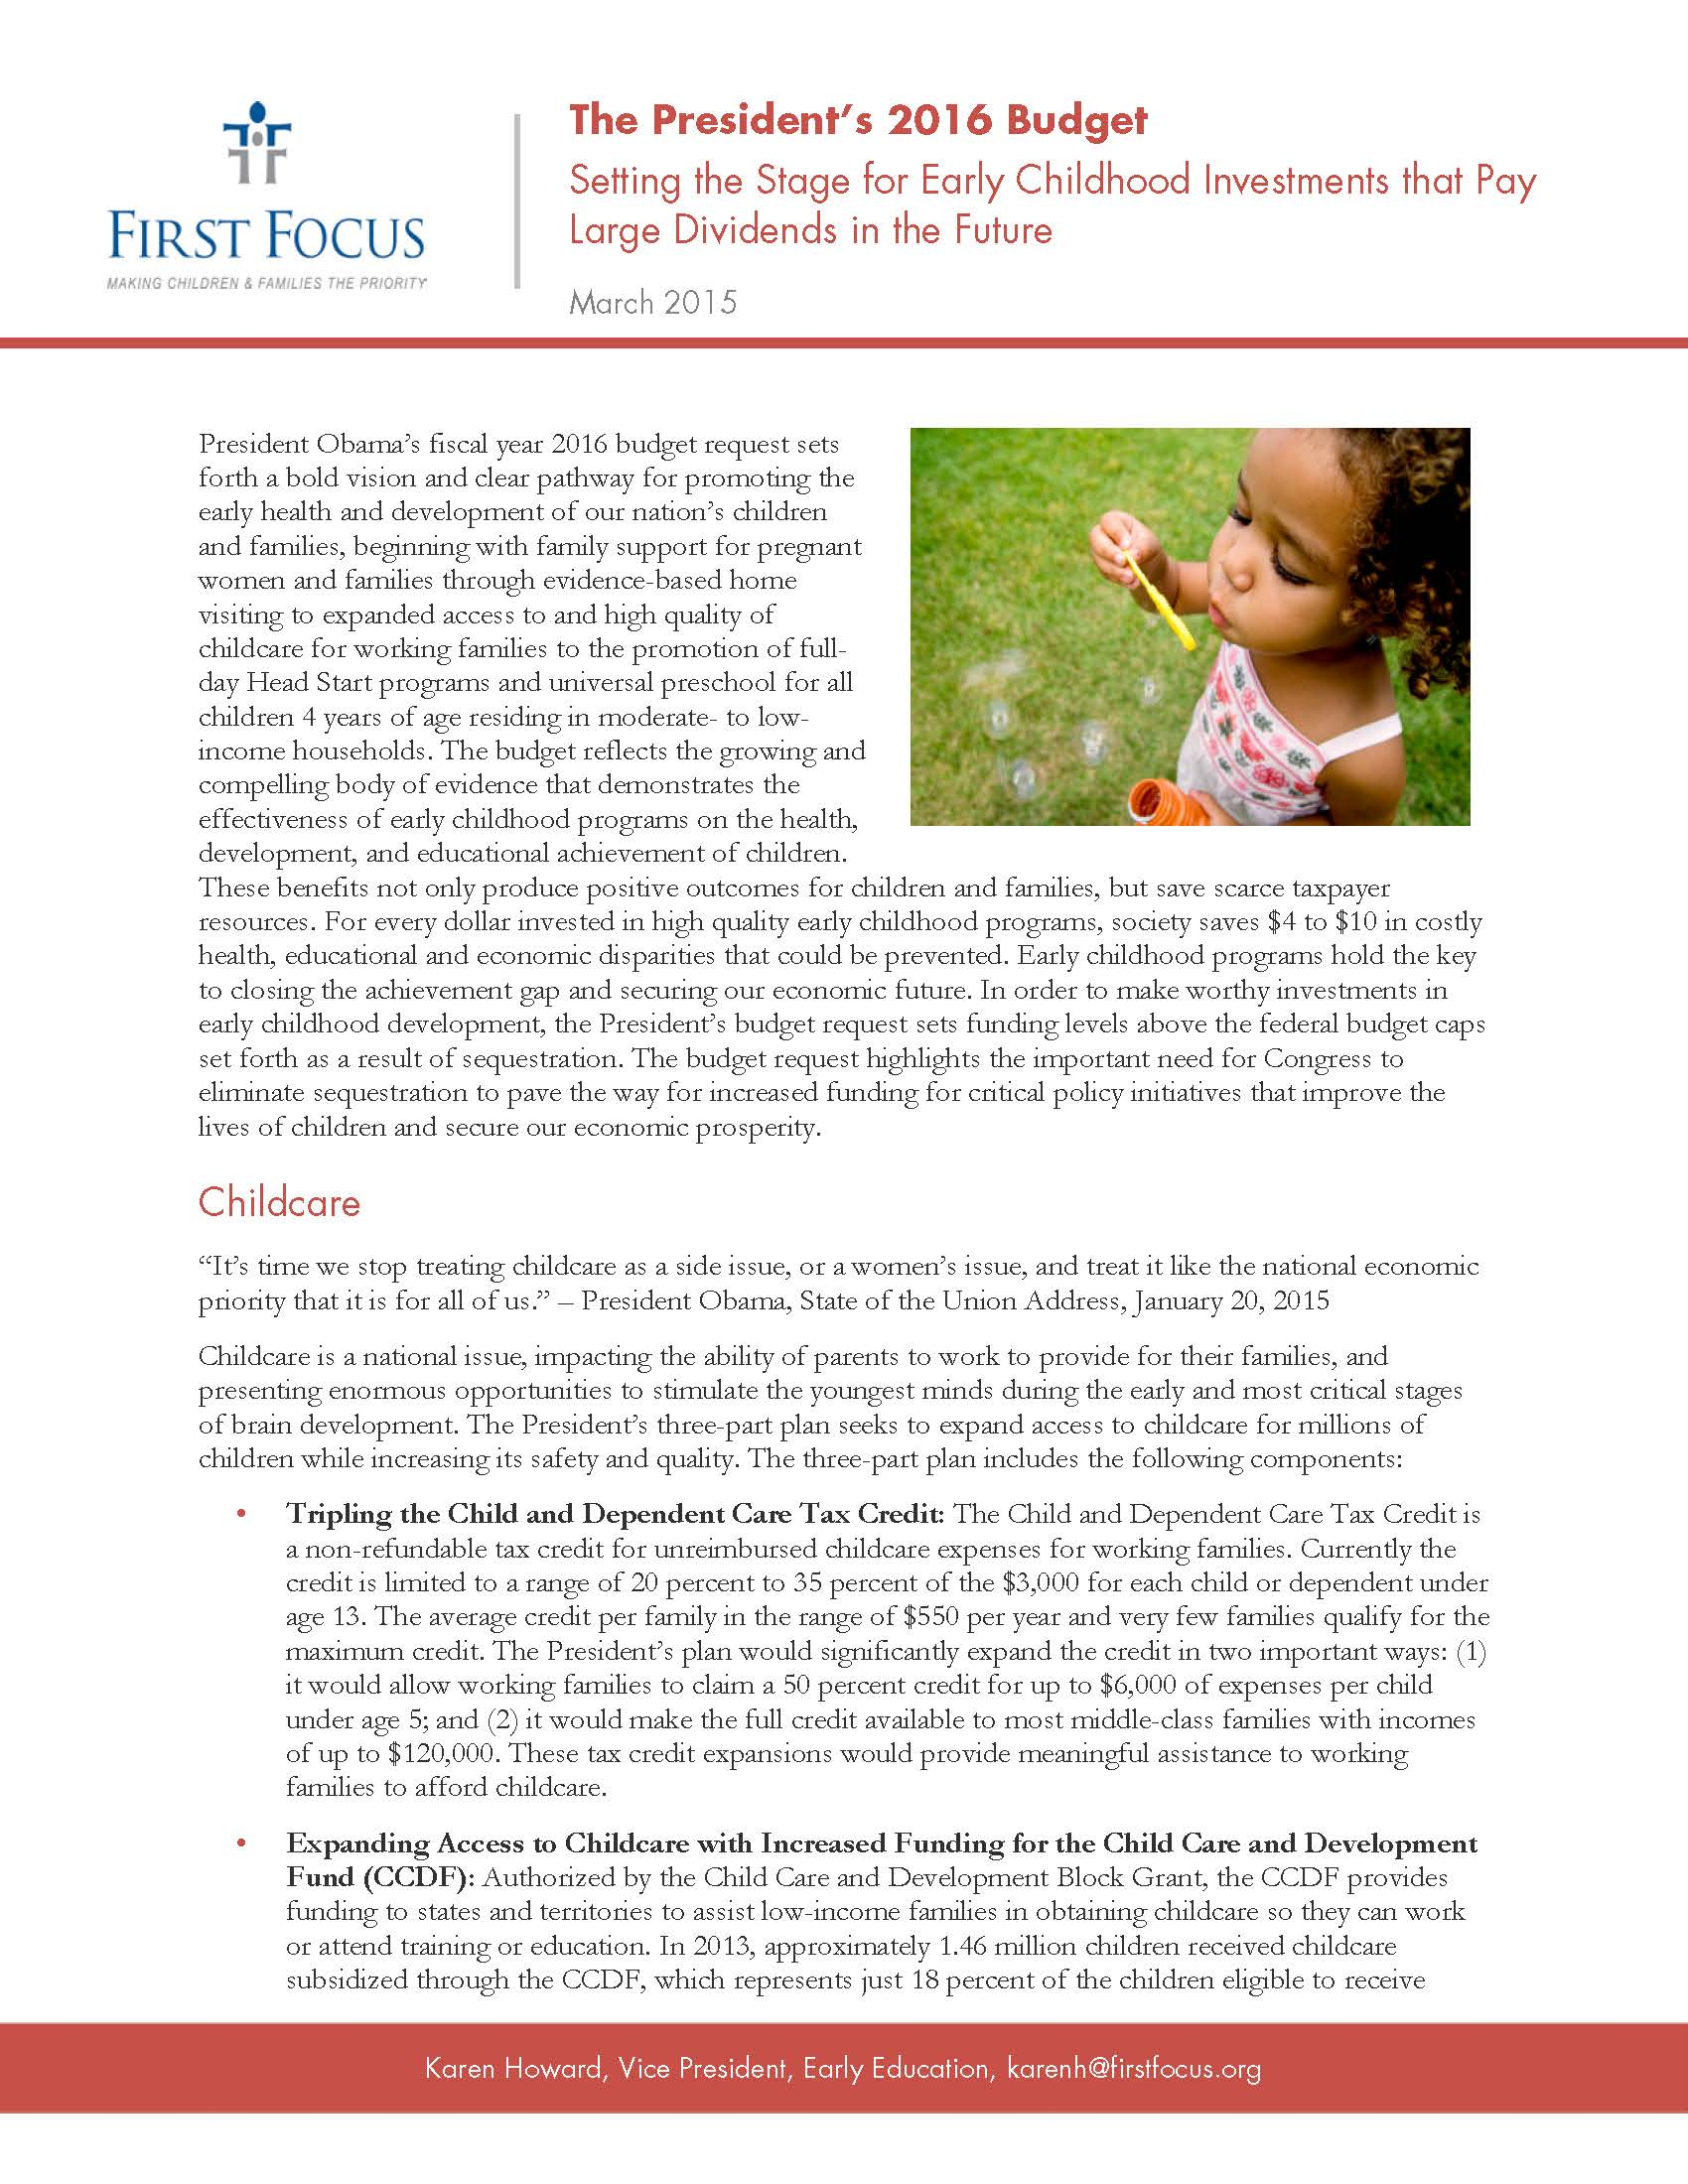 Early Childhood in the Presiden's Budget_Page_1